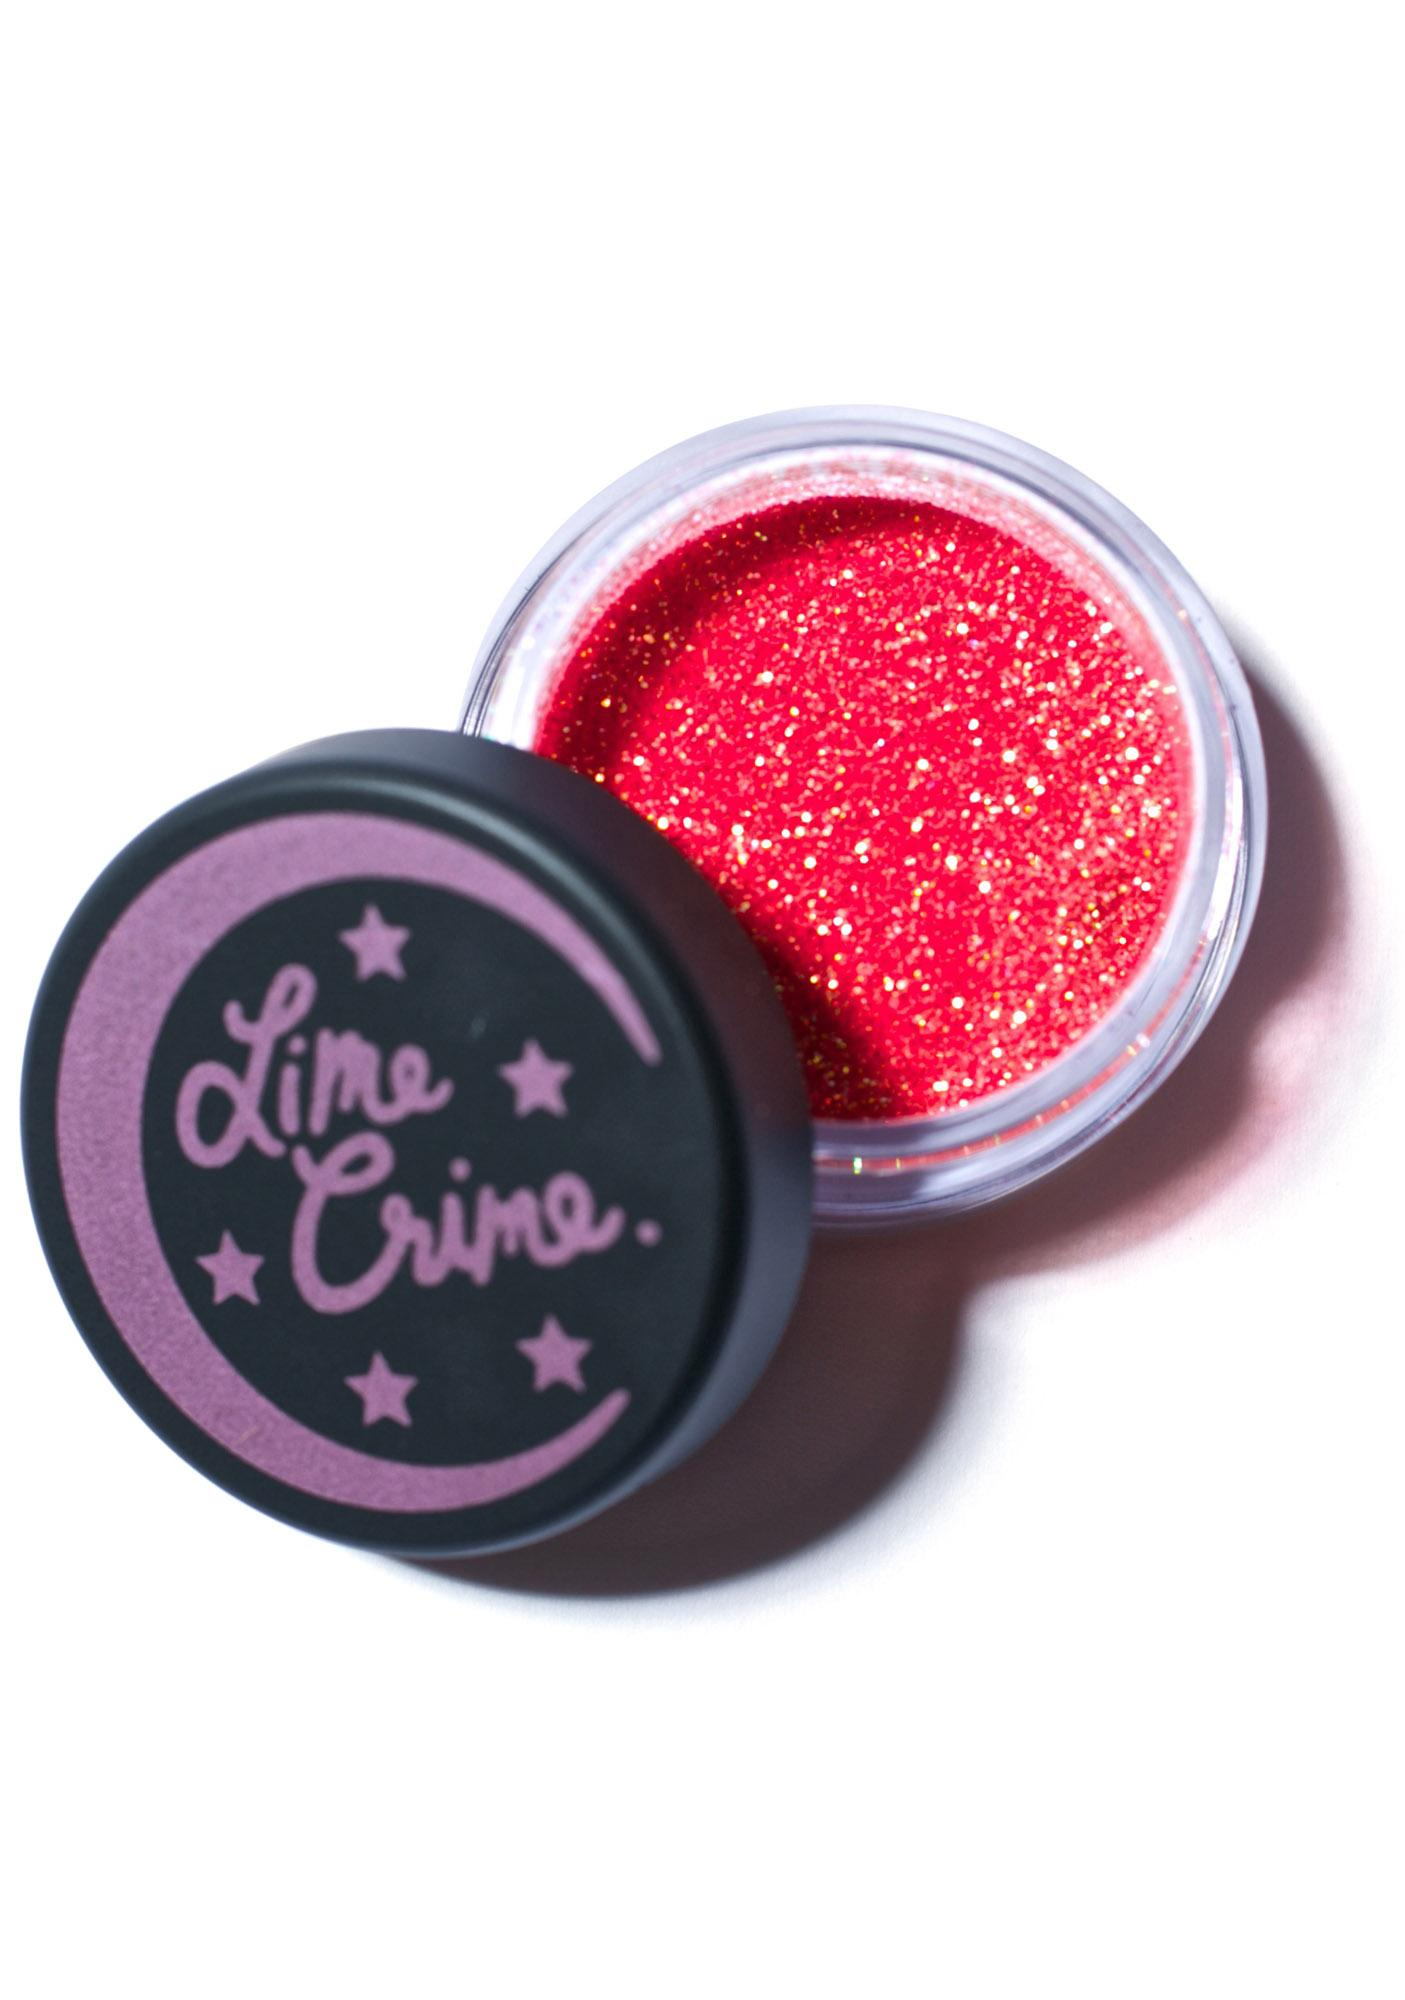 Lime Crime Aries Zodiac Eye Glitter